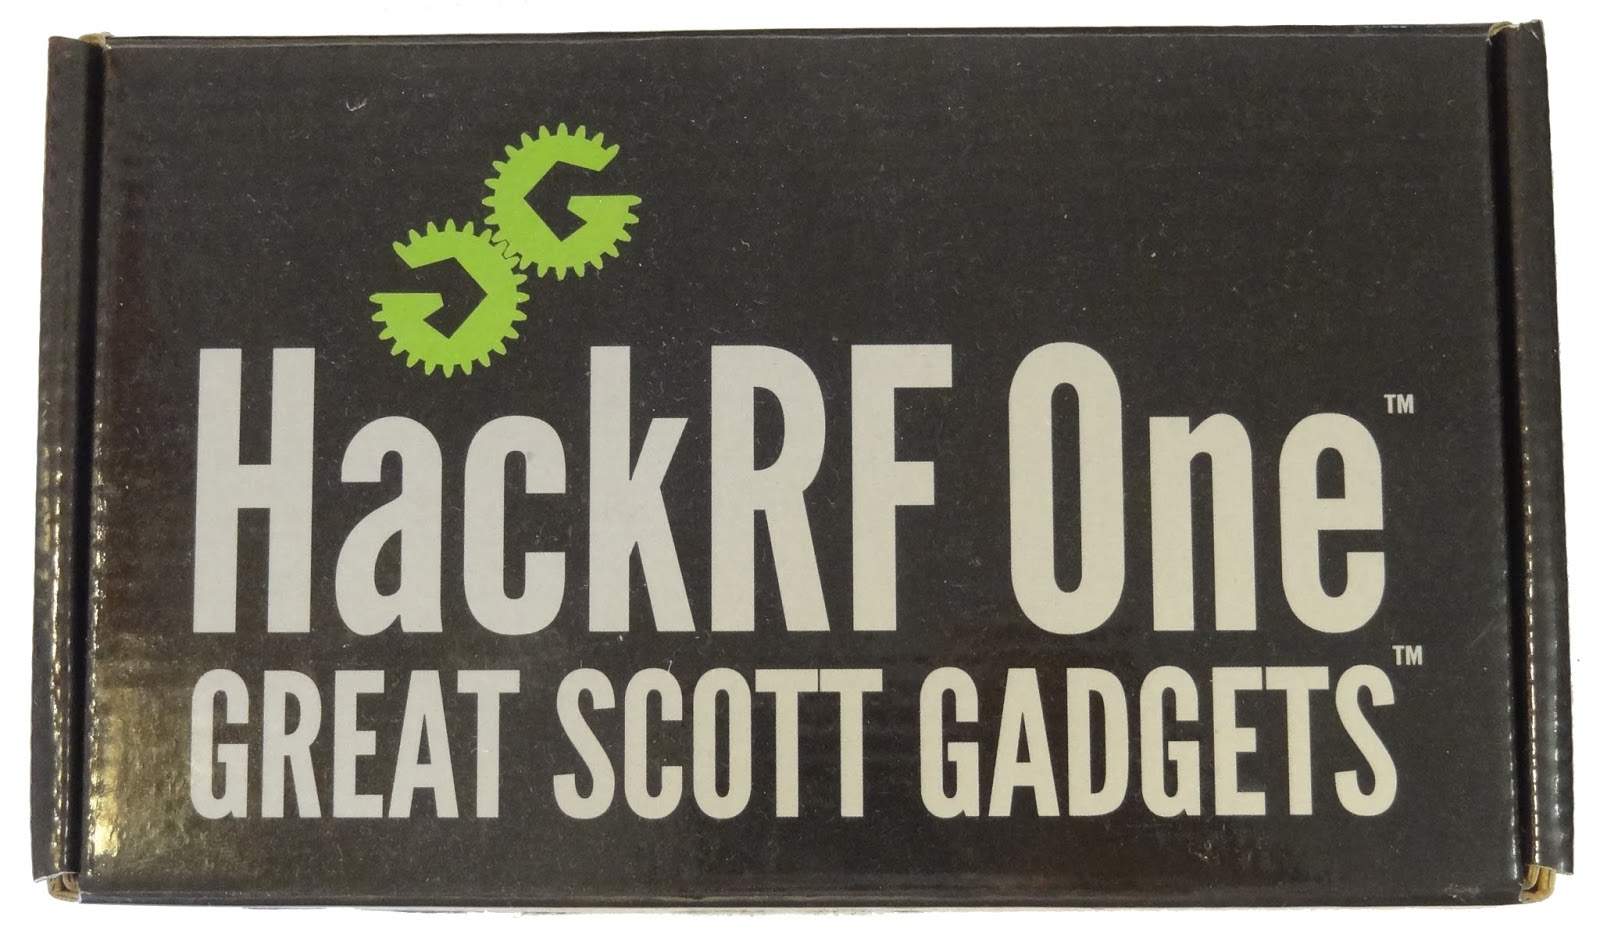 Hackrf One Review Vs Rtl Sdr Sdrplay Radio For Everyone Hacks And Mods Easy To Use Fm Receiver Summary Buy A Hacking Or Reverse Engineering Wireless Devices Performance Is Equal Sub Par An Dongle But Much Less Hassle More